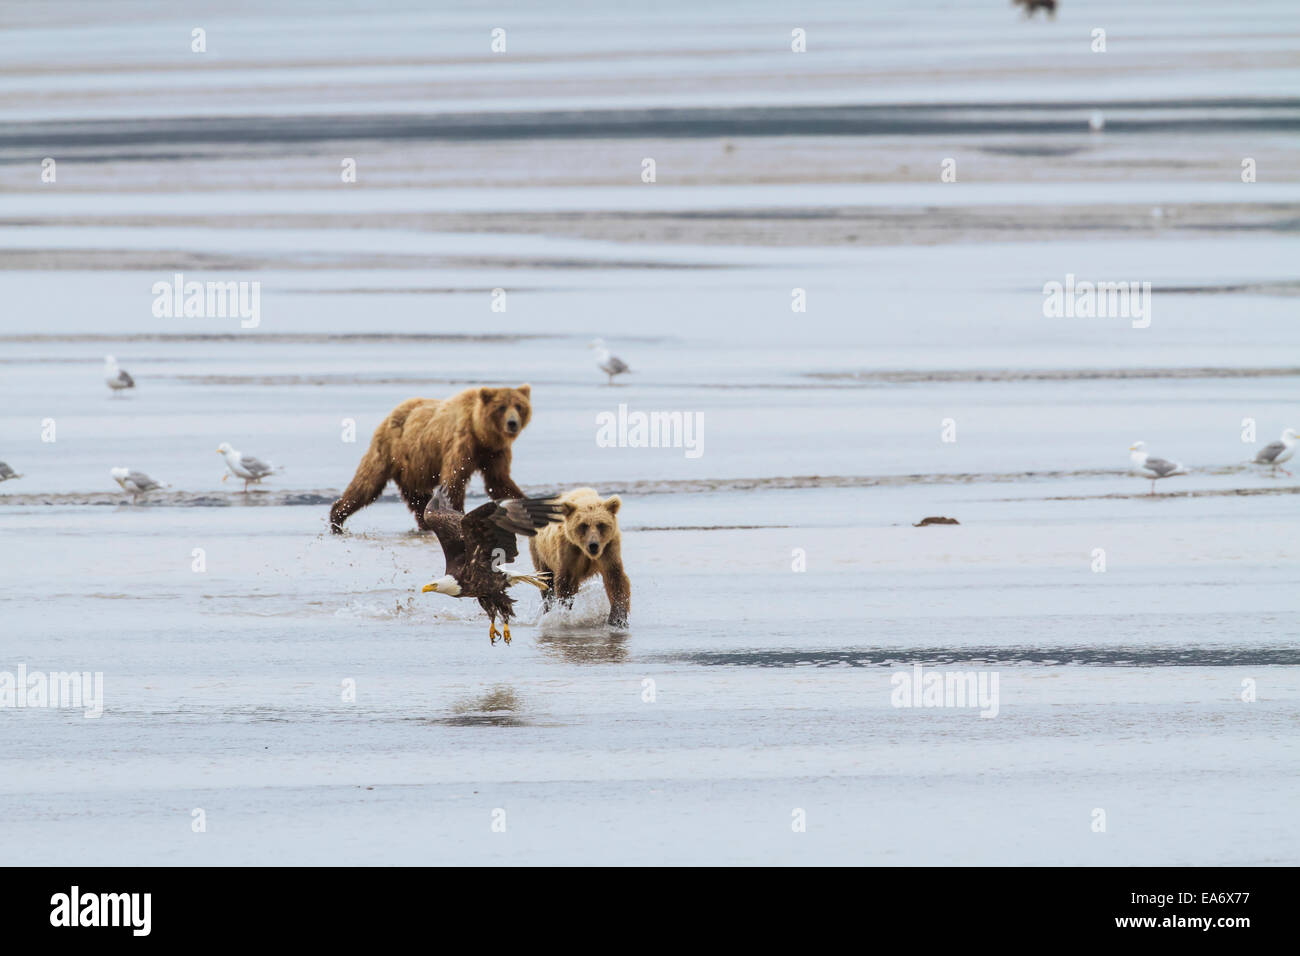 Sow,Cub,Chasing,Bald Eagle,Brown Bear - Stock Image